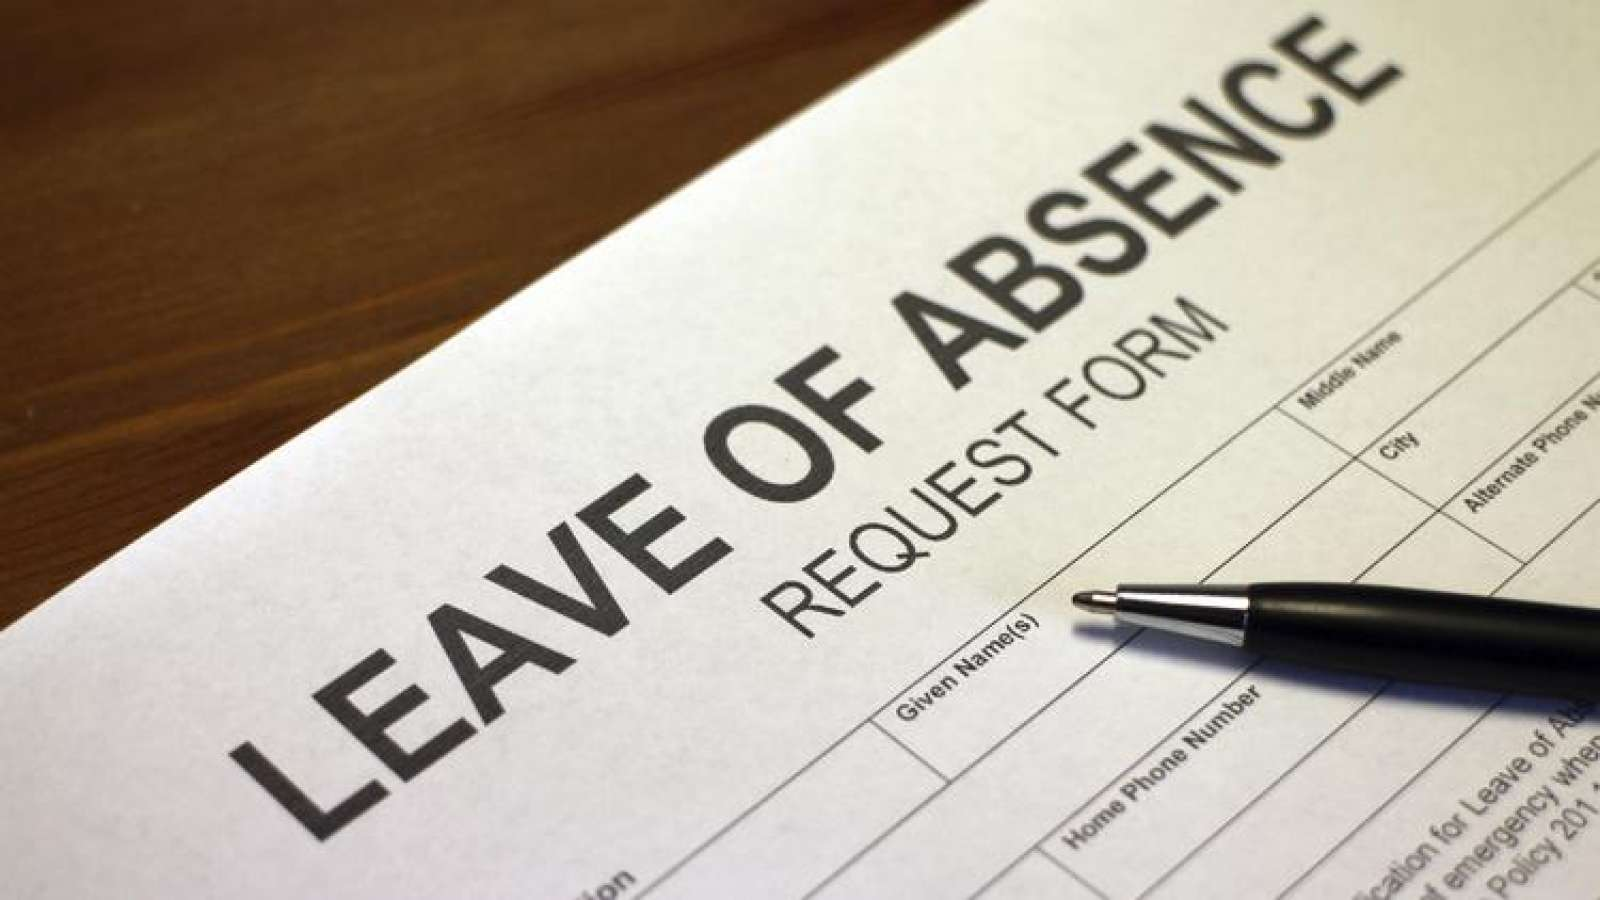 U.S. Department of Labor States Employees May Not Decline or Defer FMLA Leave of a Covered Absence